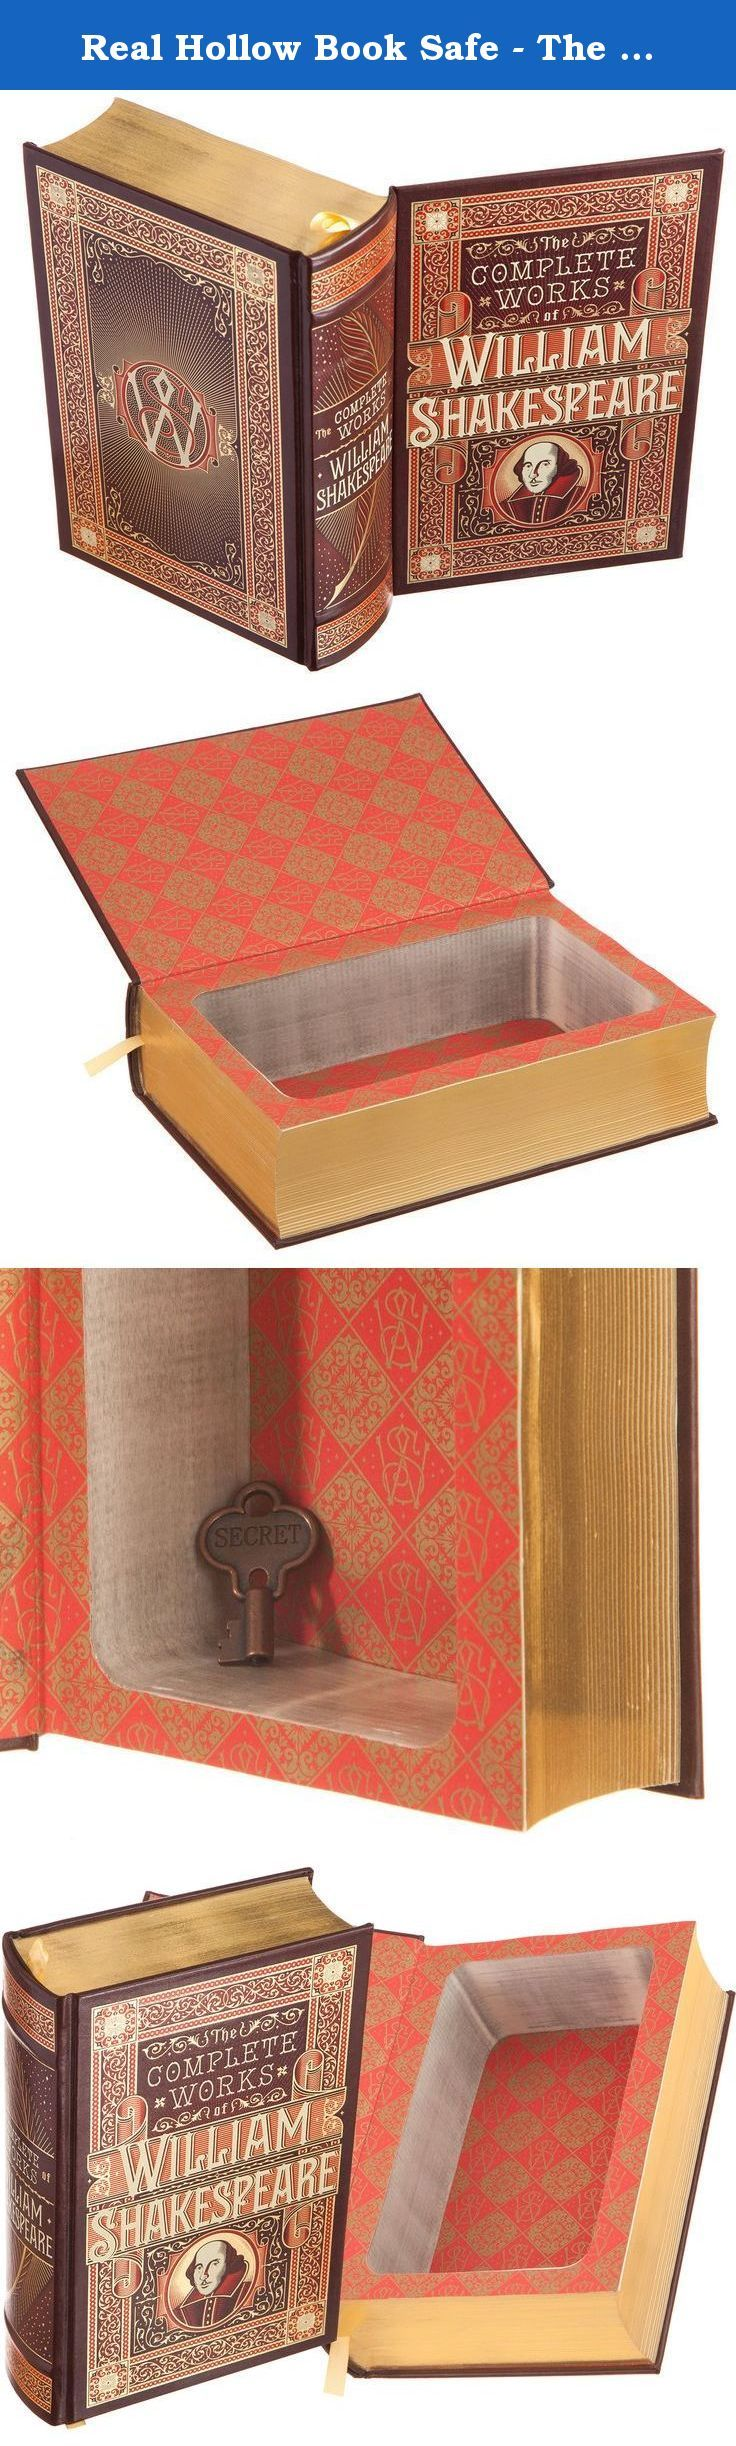 Real Hollow Book Safe - The Complete Works of William Shakespeare (Leather-bound) (Magnetic Closure). A hollow book is the age-old way to hide your stuff in plain sight -- whether it's cash, jewelry, or secret love letters. They make gift giving super easy; just fill the book with anything you want to give your recipient, and you have a uniquely presented gift! Also use them when traveling to keep your valuables from prying eyes. This leather-bound hollow book made from The Complete Works…